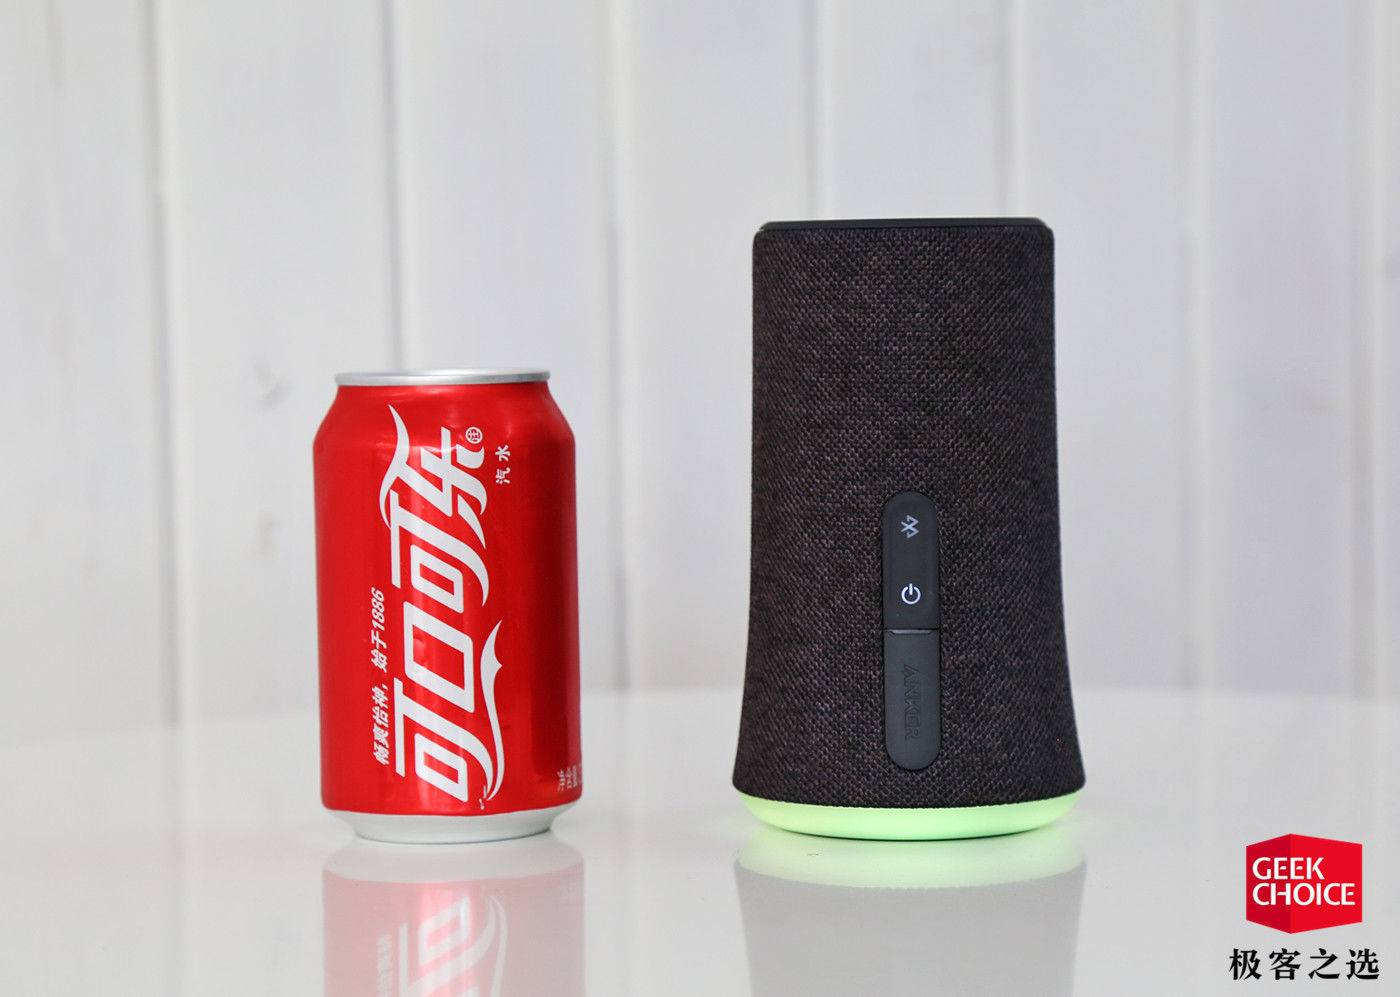 Anker Soundcore Flare 蓝牙音箱体验